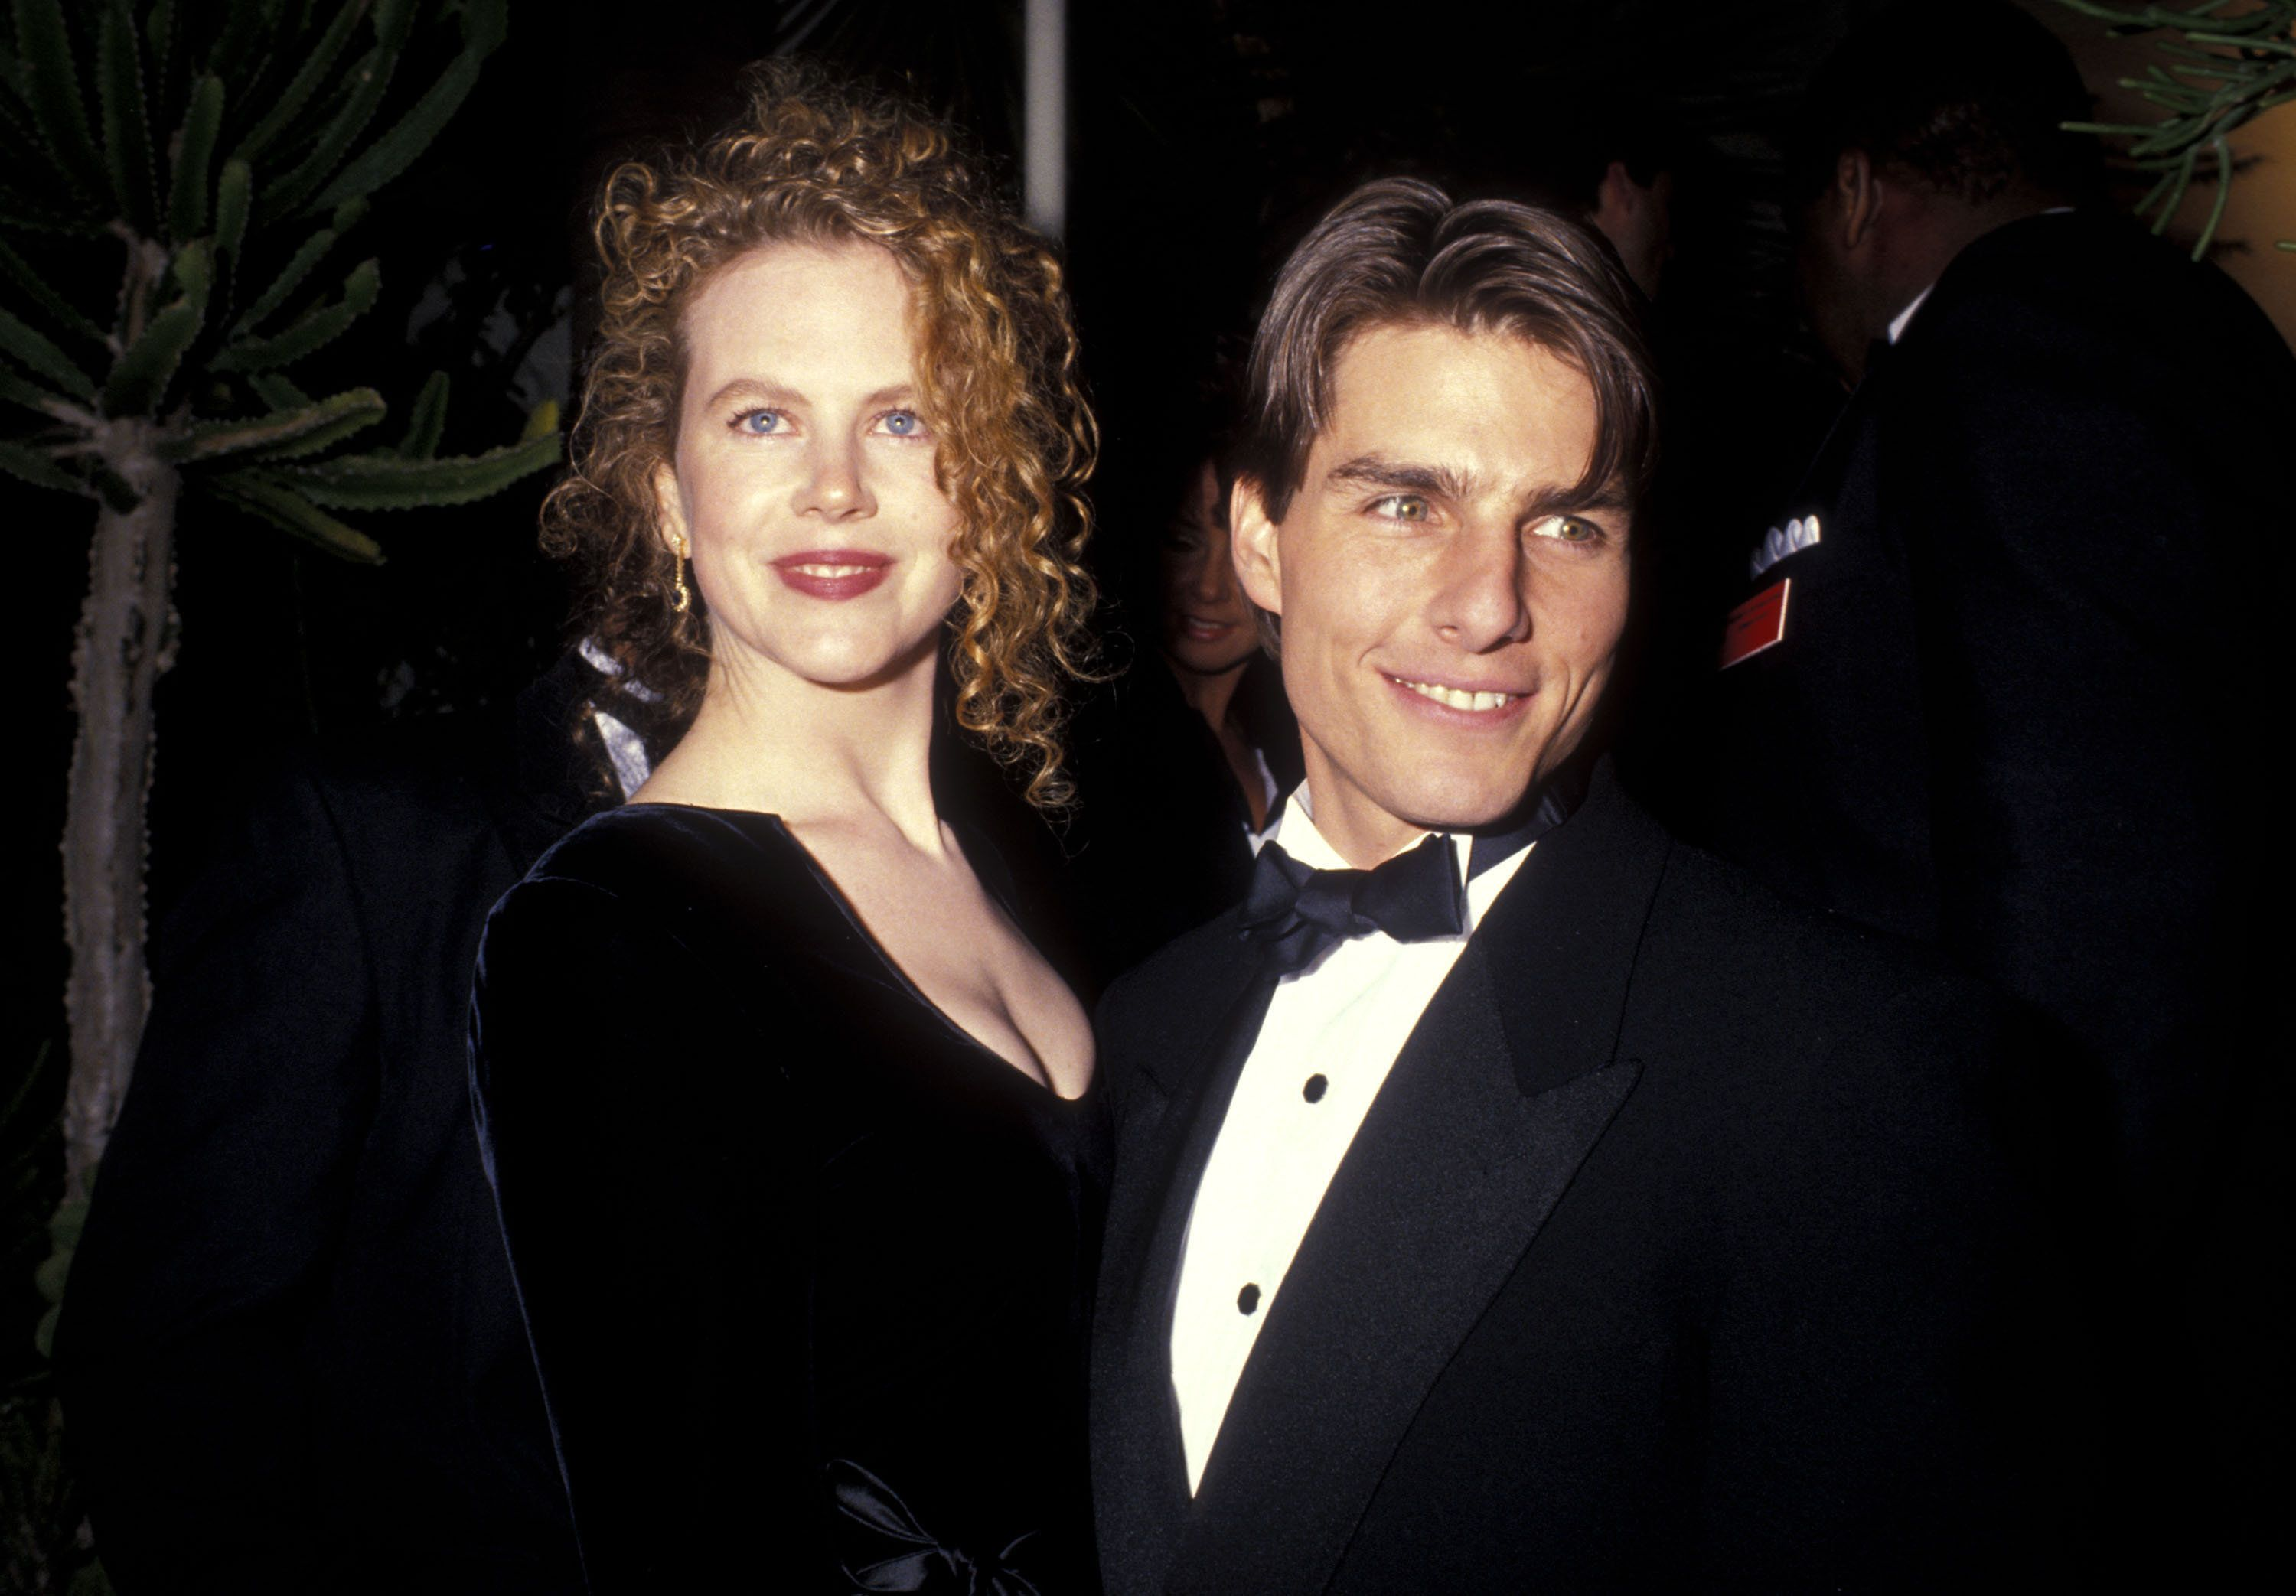 Nicole Kidman on being married to Tom Cruise: